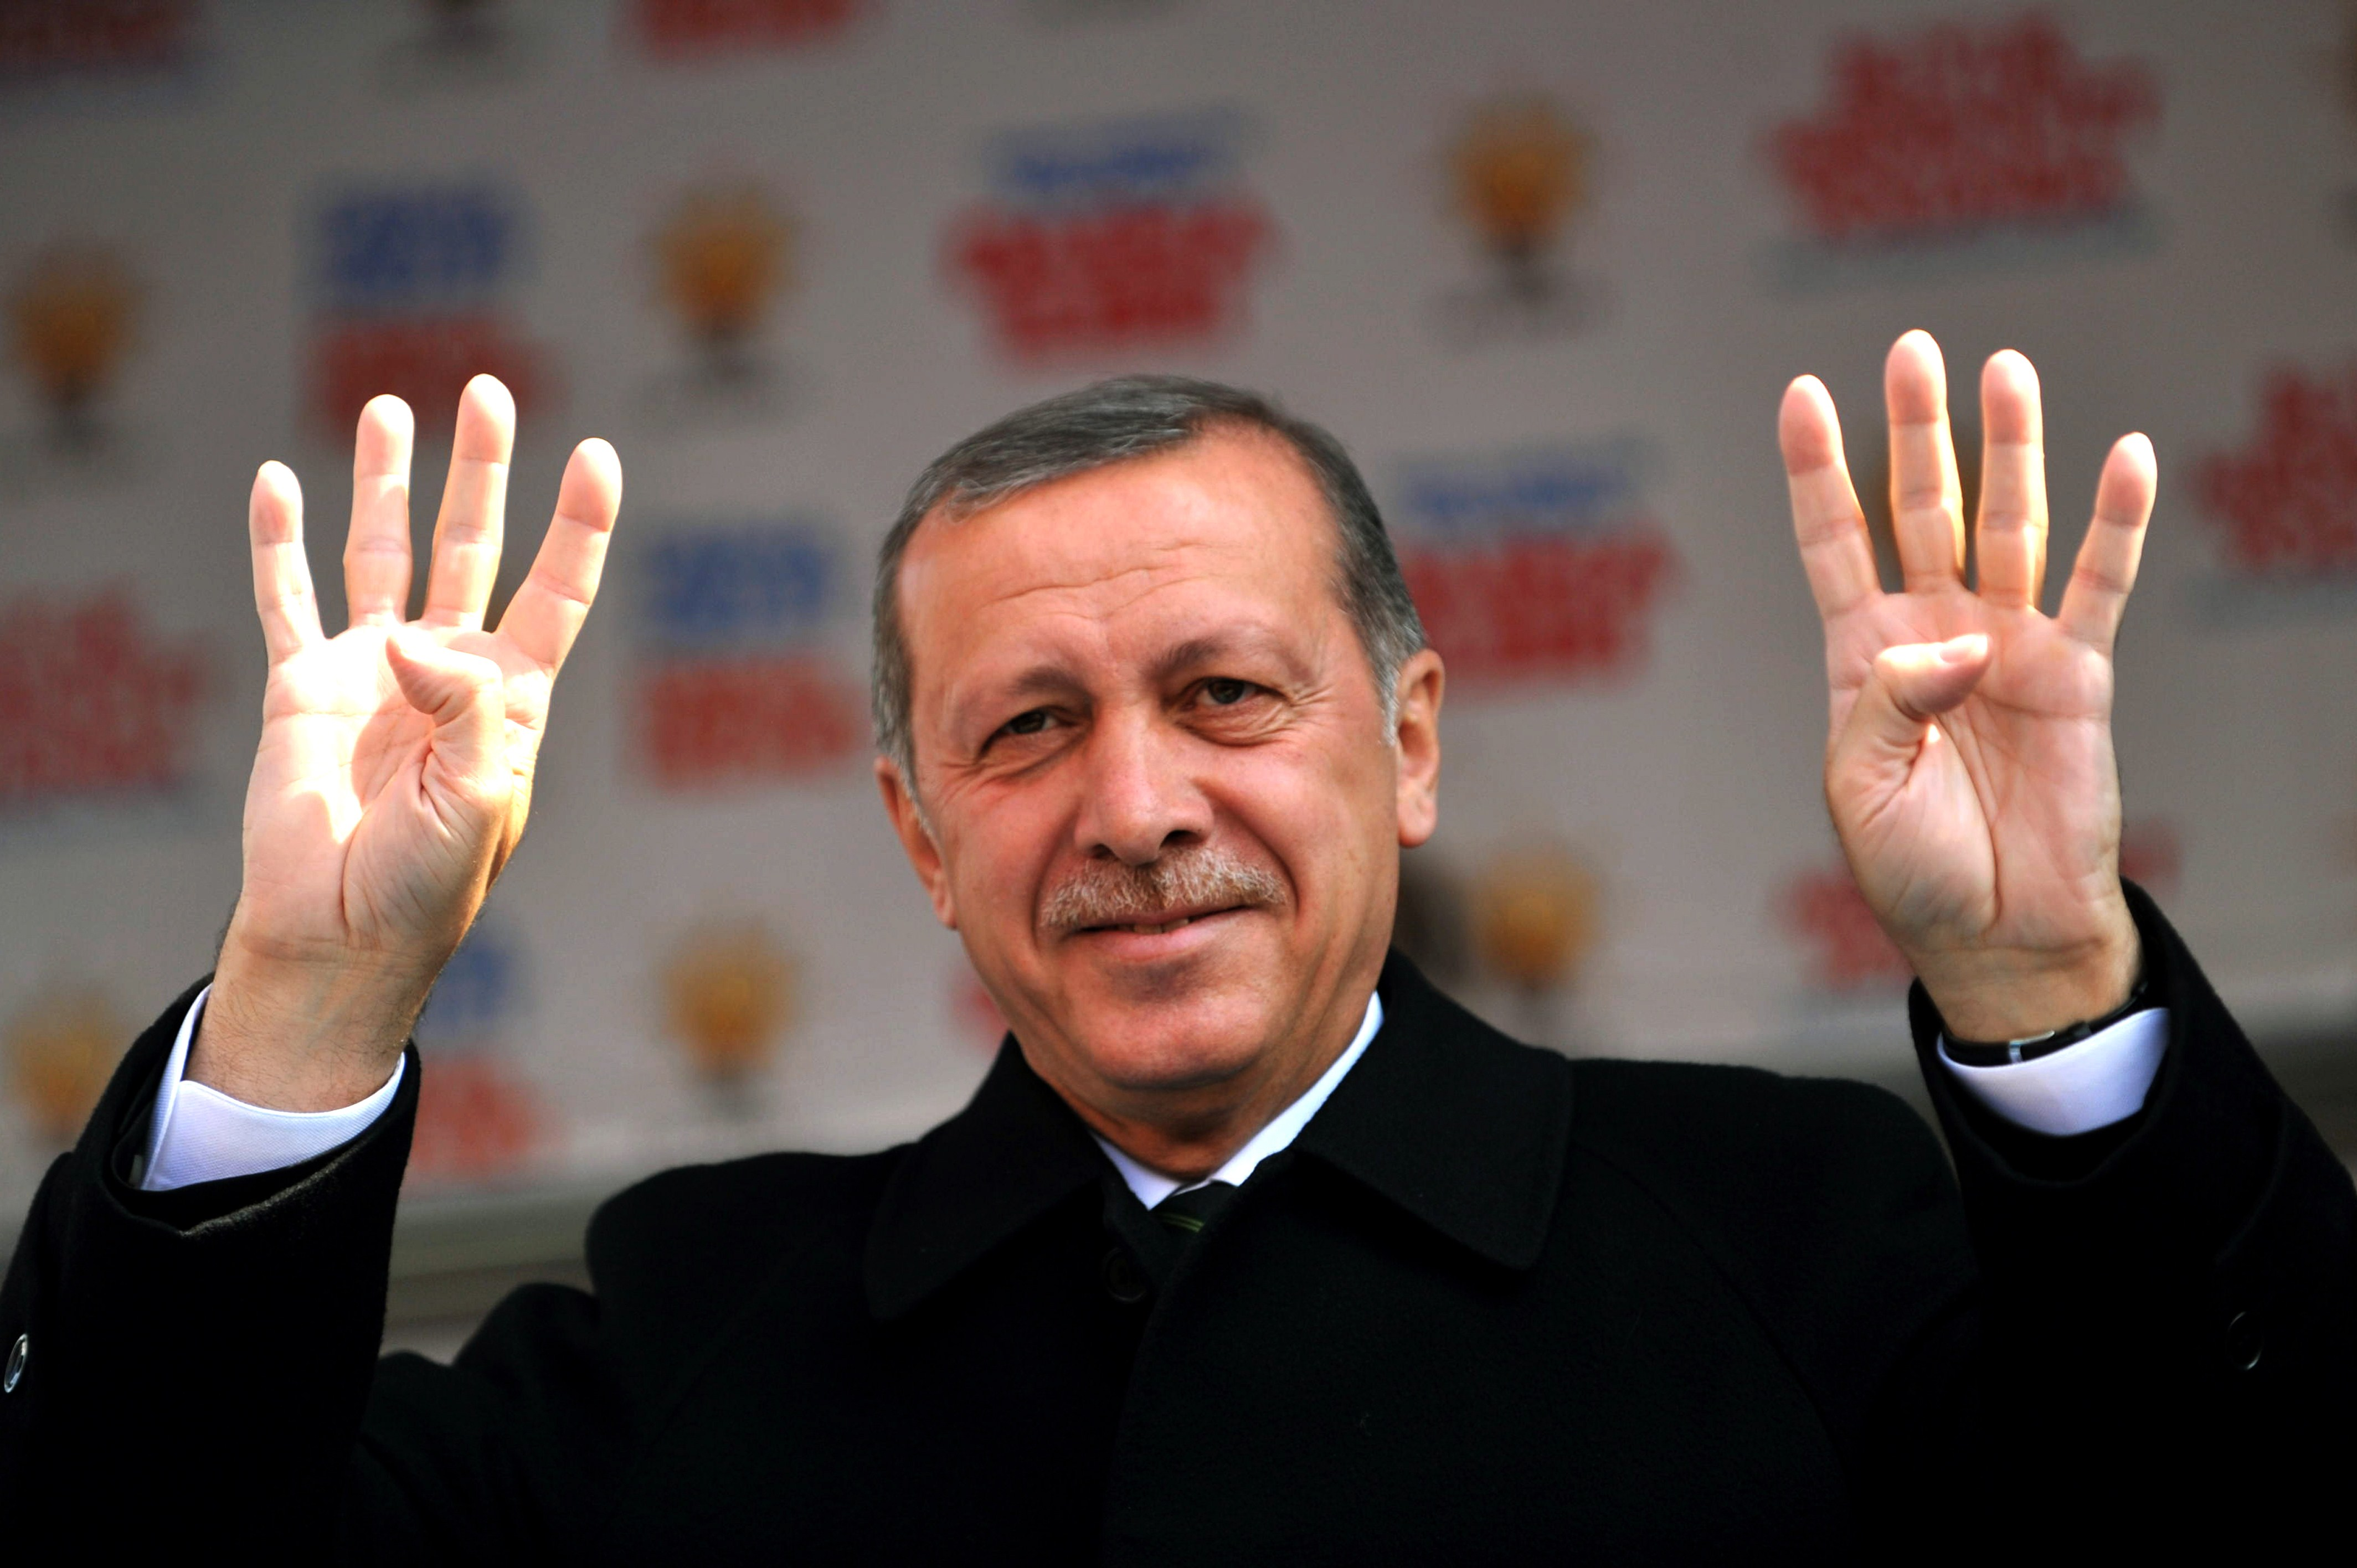 Turkish Prime Minister Recep Tayyip Erdogan waves the four finger sign of rabia during a rally of the Justice and Development Party in the Kartal district at the asia side of Istanbul on March 29, 2014.